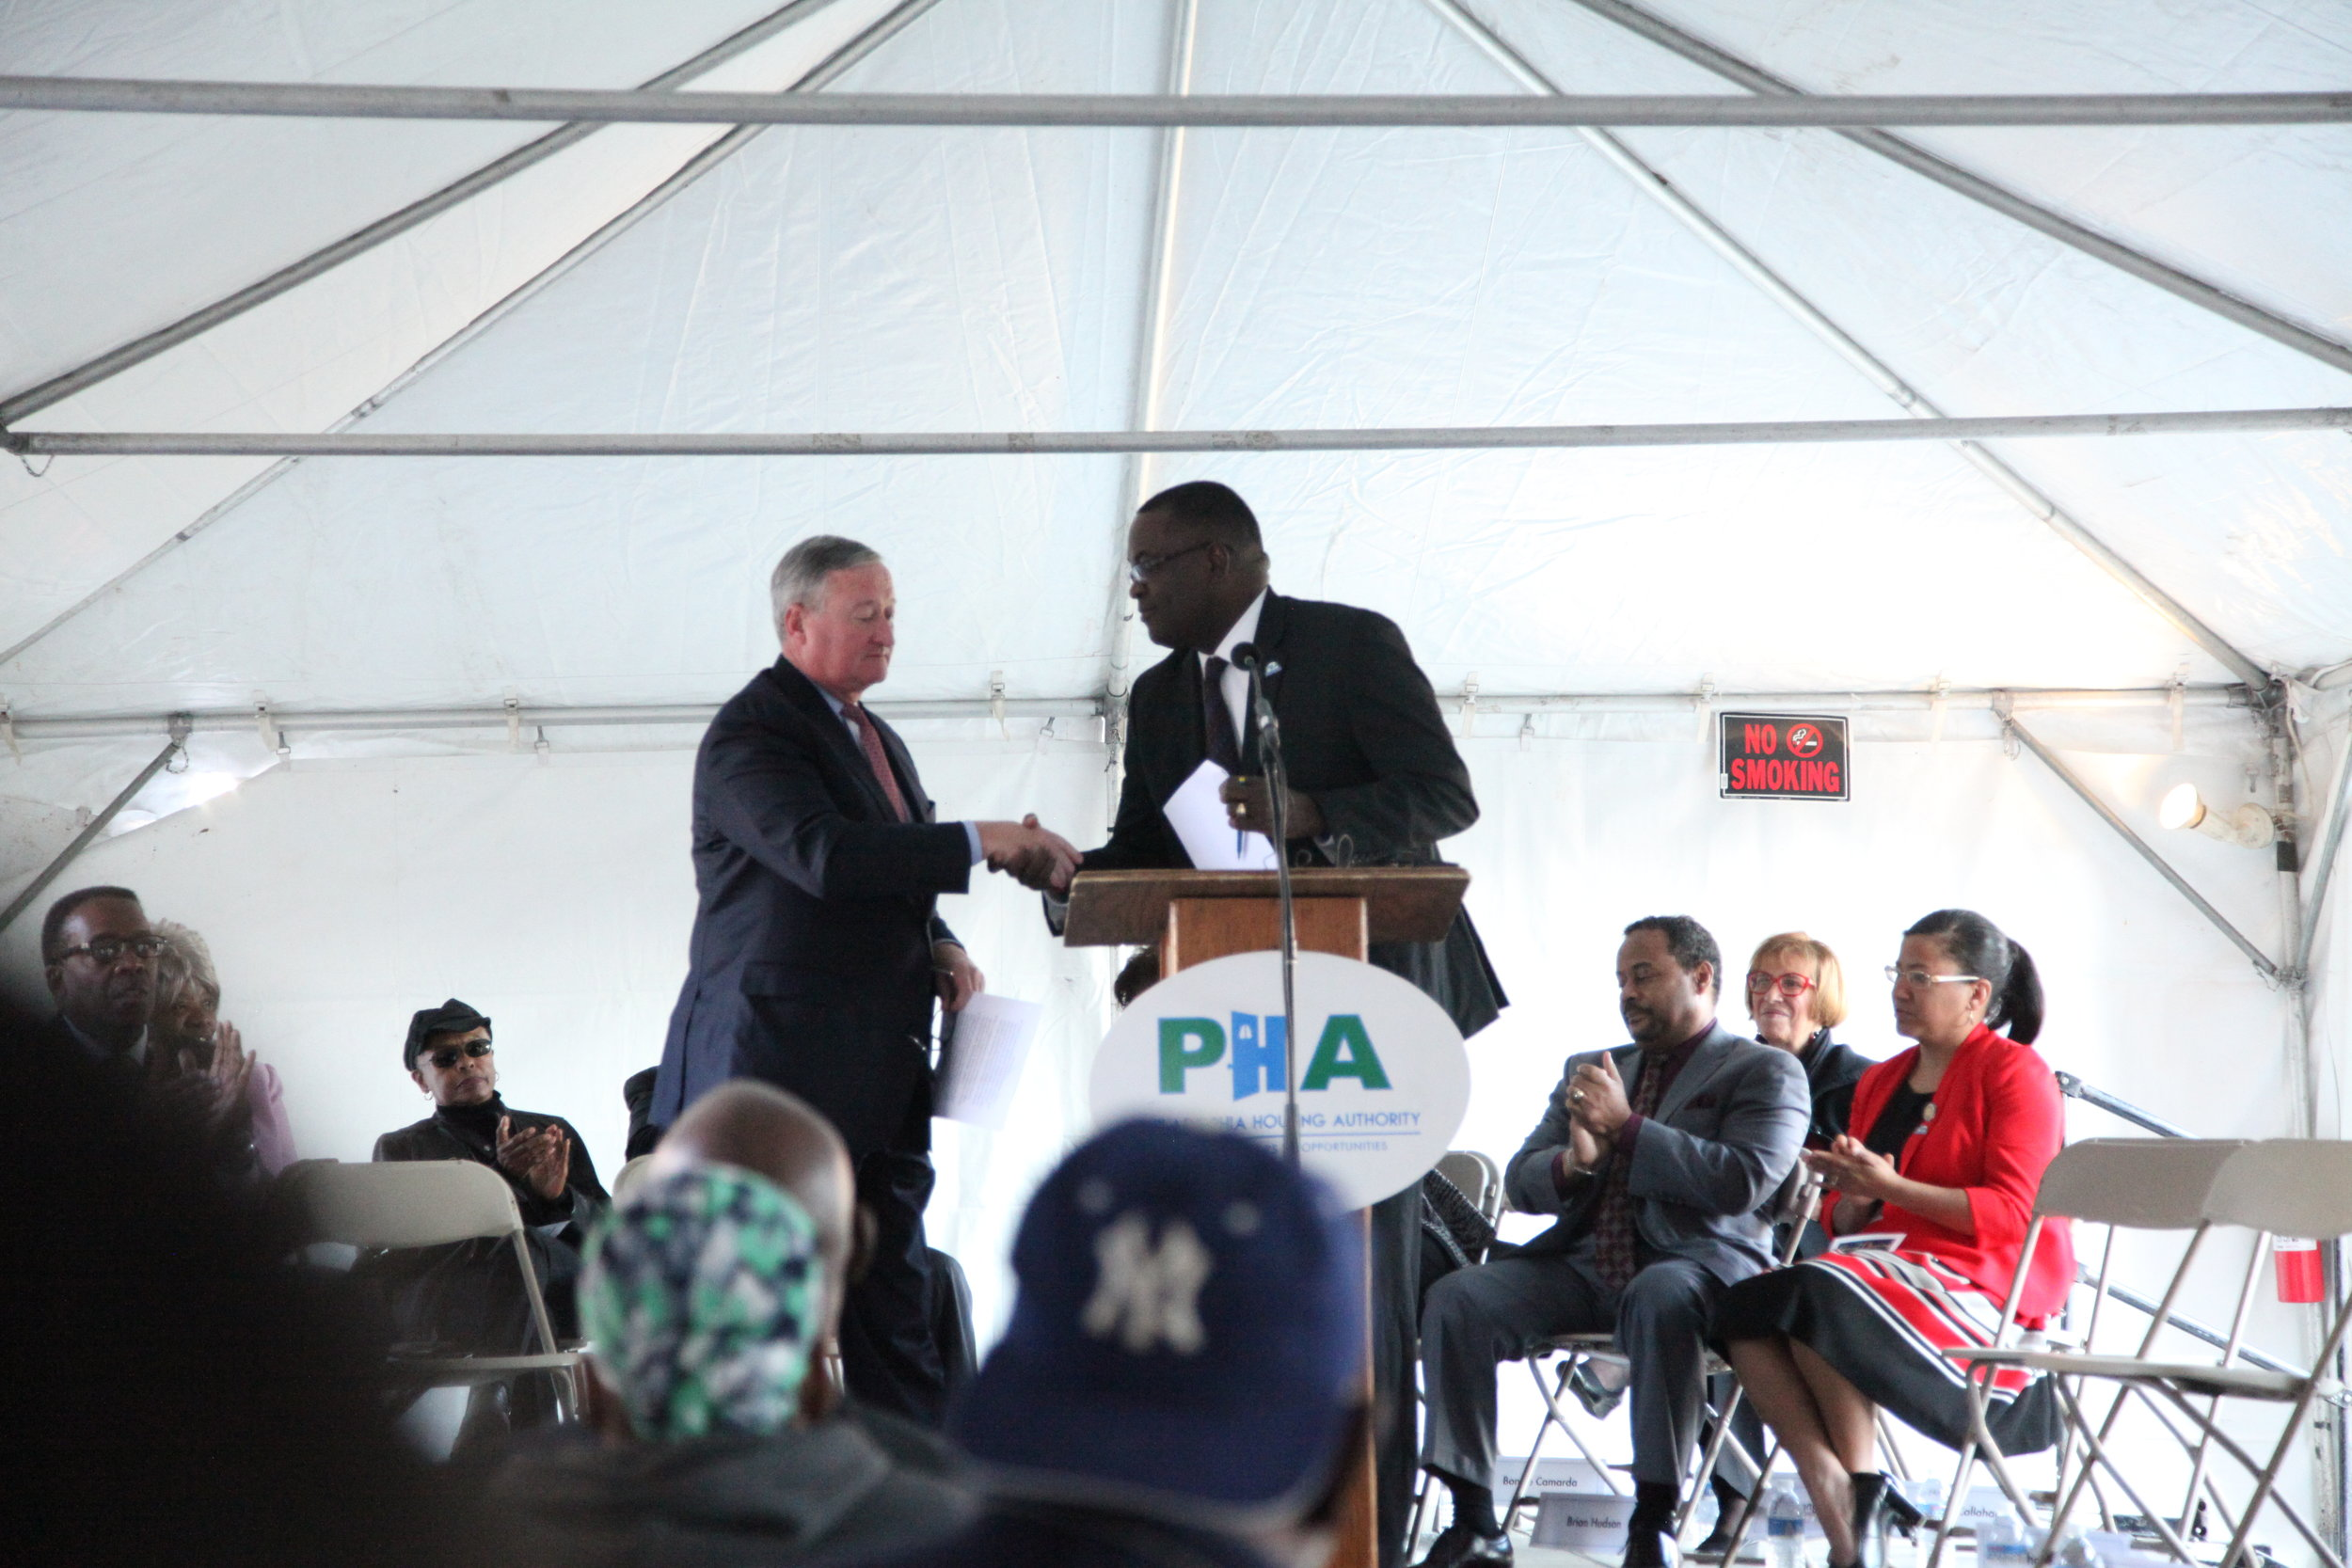 Mayor Jim Kenney shakes hands with PHA President & CEO, Kelvin Jeremiah